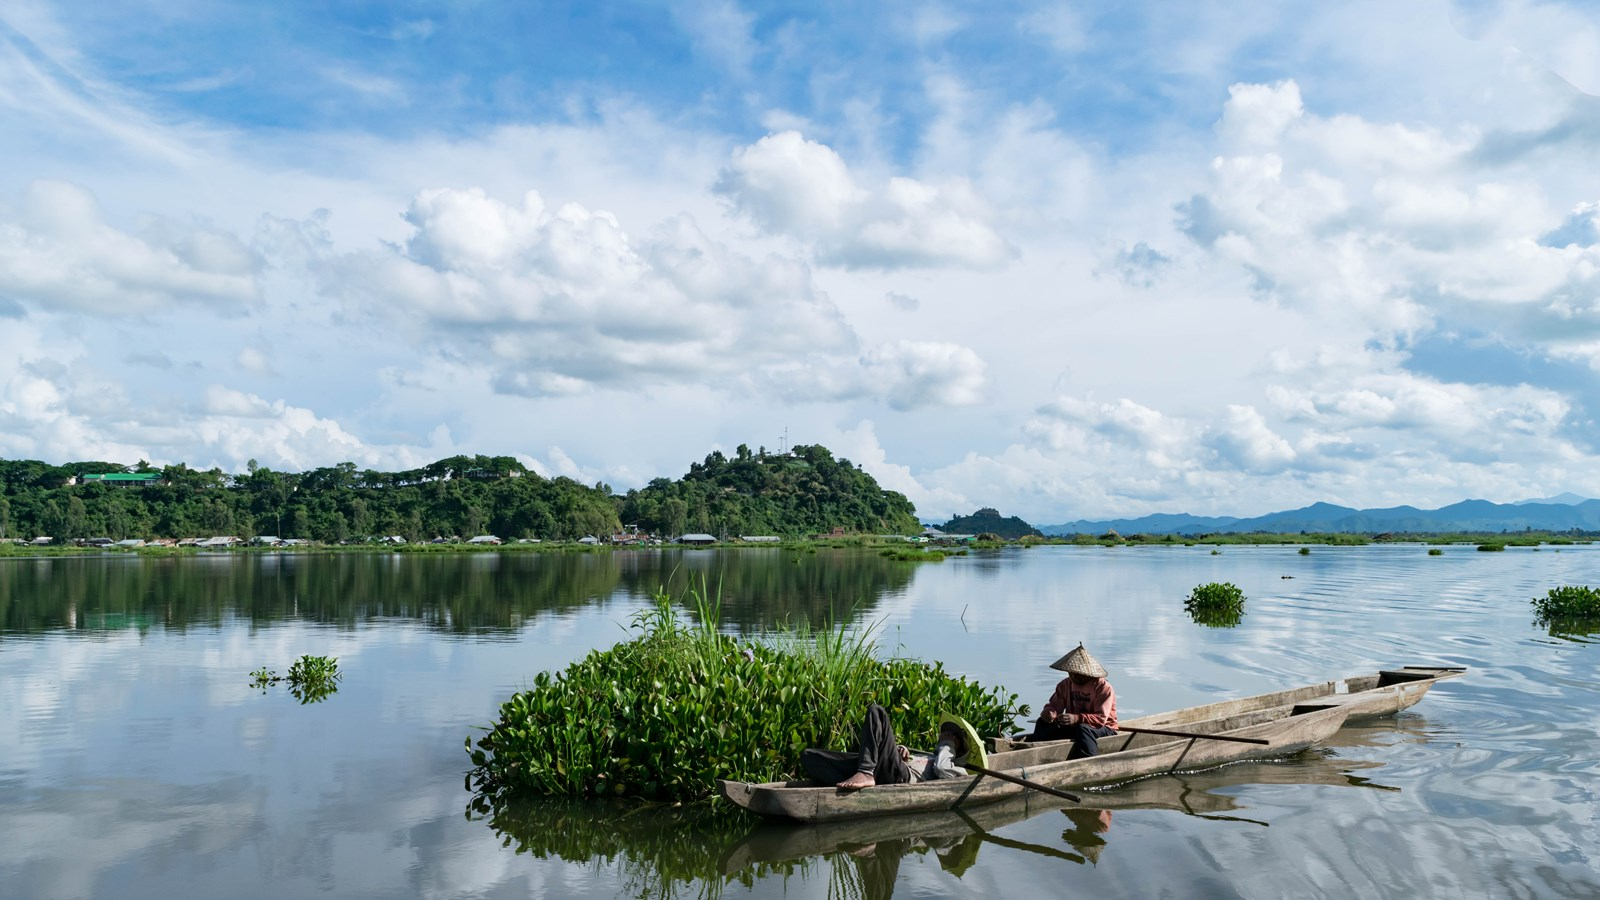 Things to Do in Manipur - Activities & Attractions in Manipur